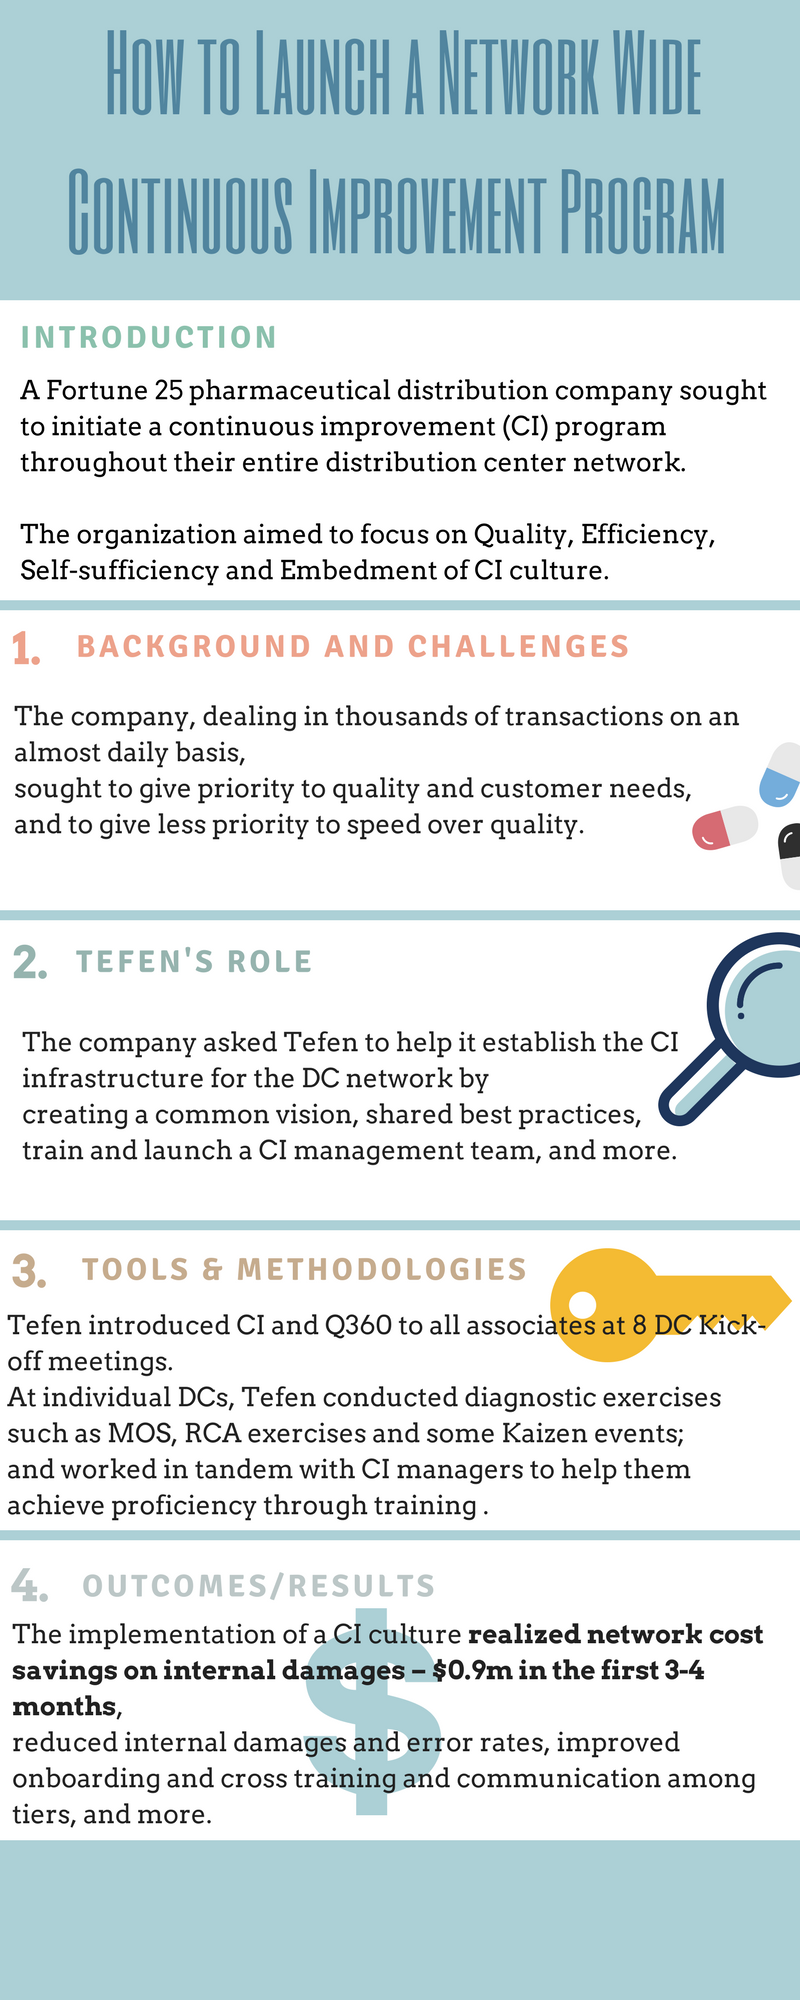 Infographics - How to Launch a Network Wide Continuous Improvement Program